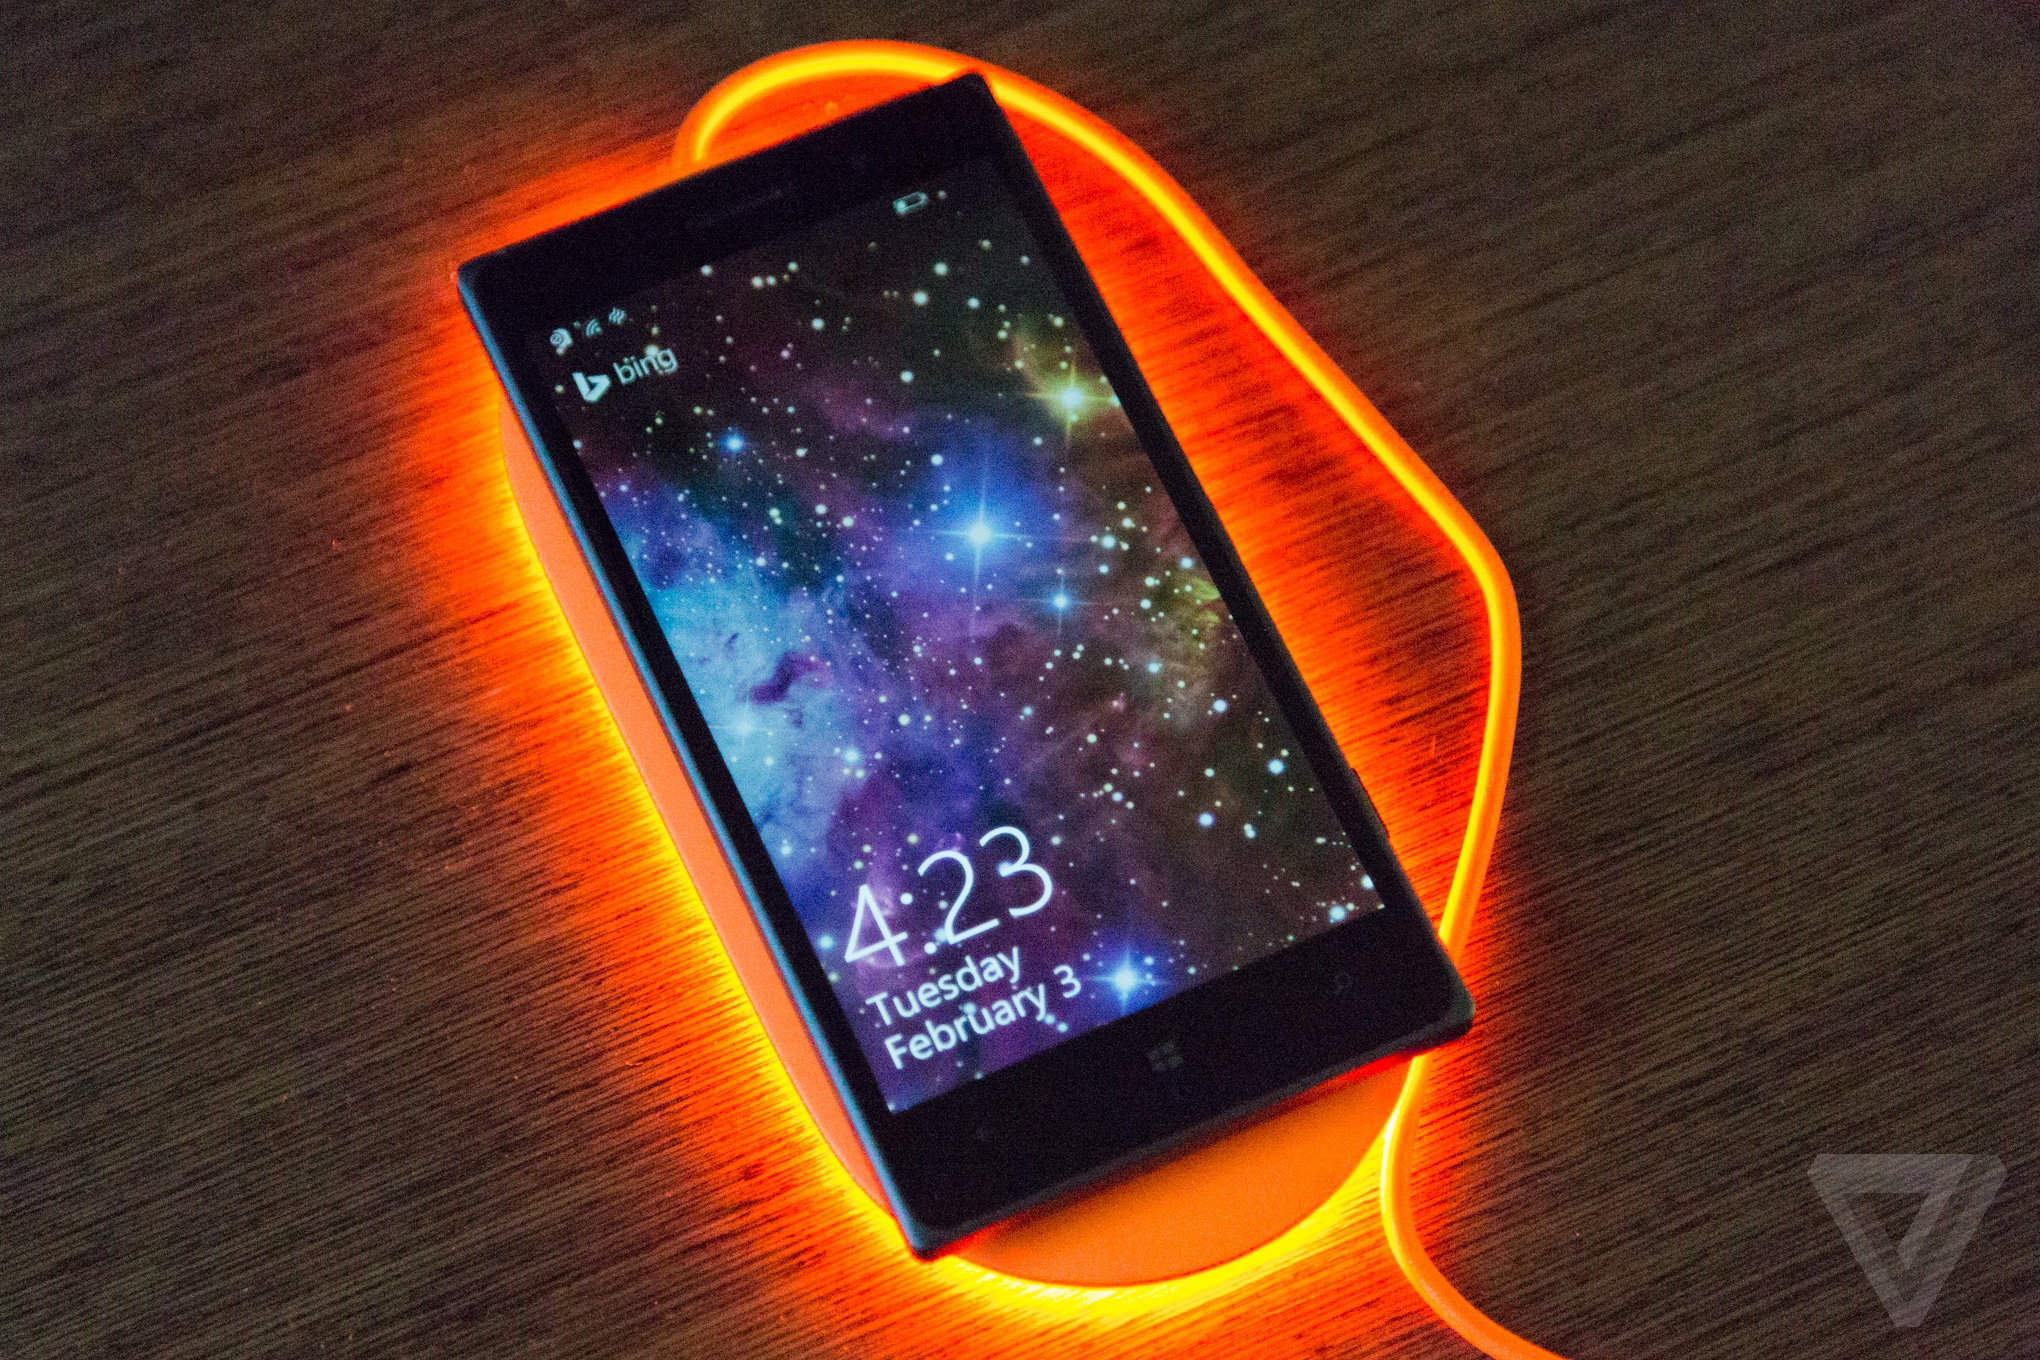 Wireless charging is finally going to be quick as well as convenient